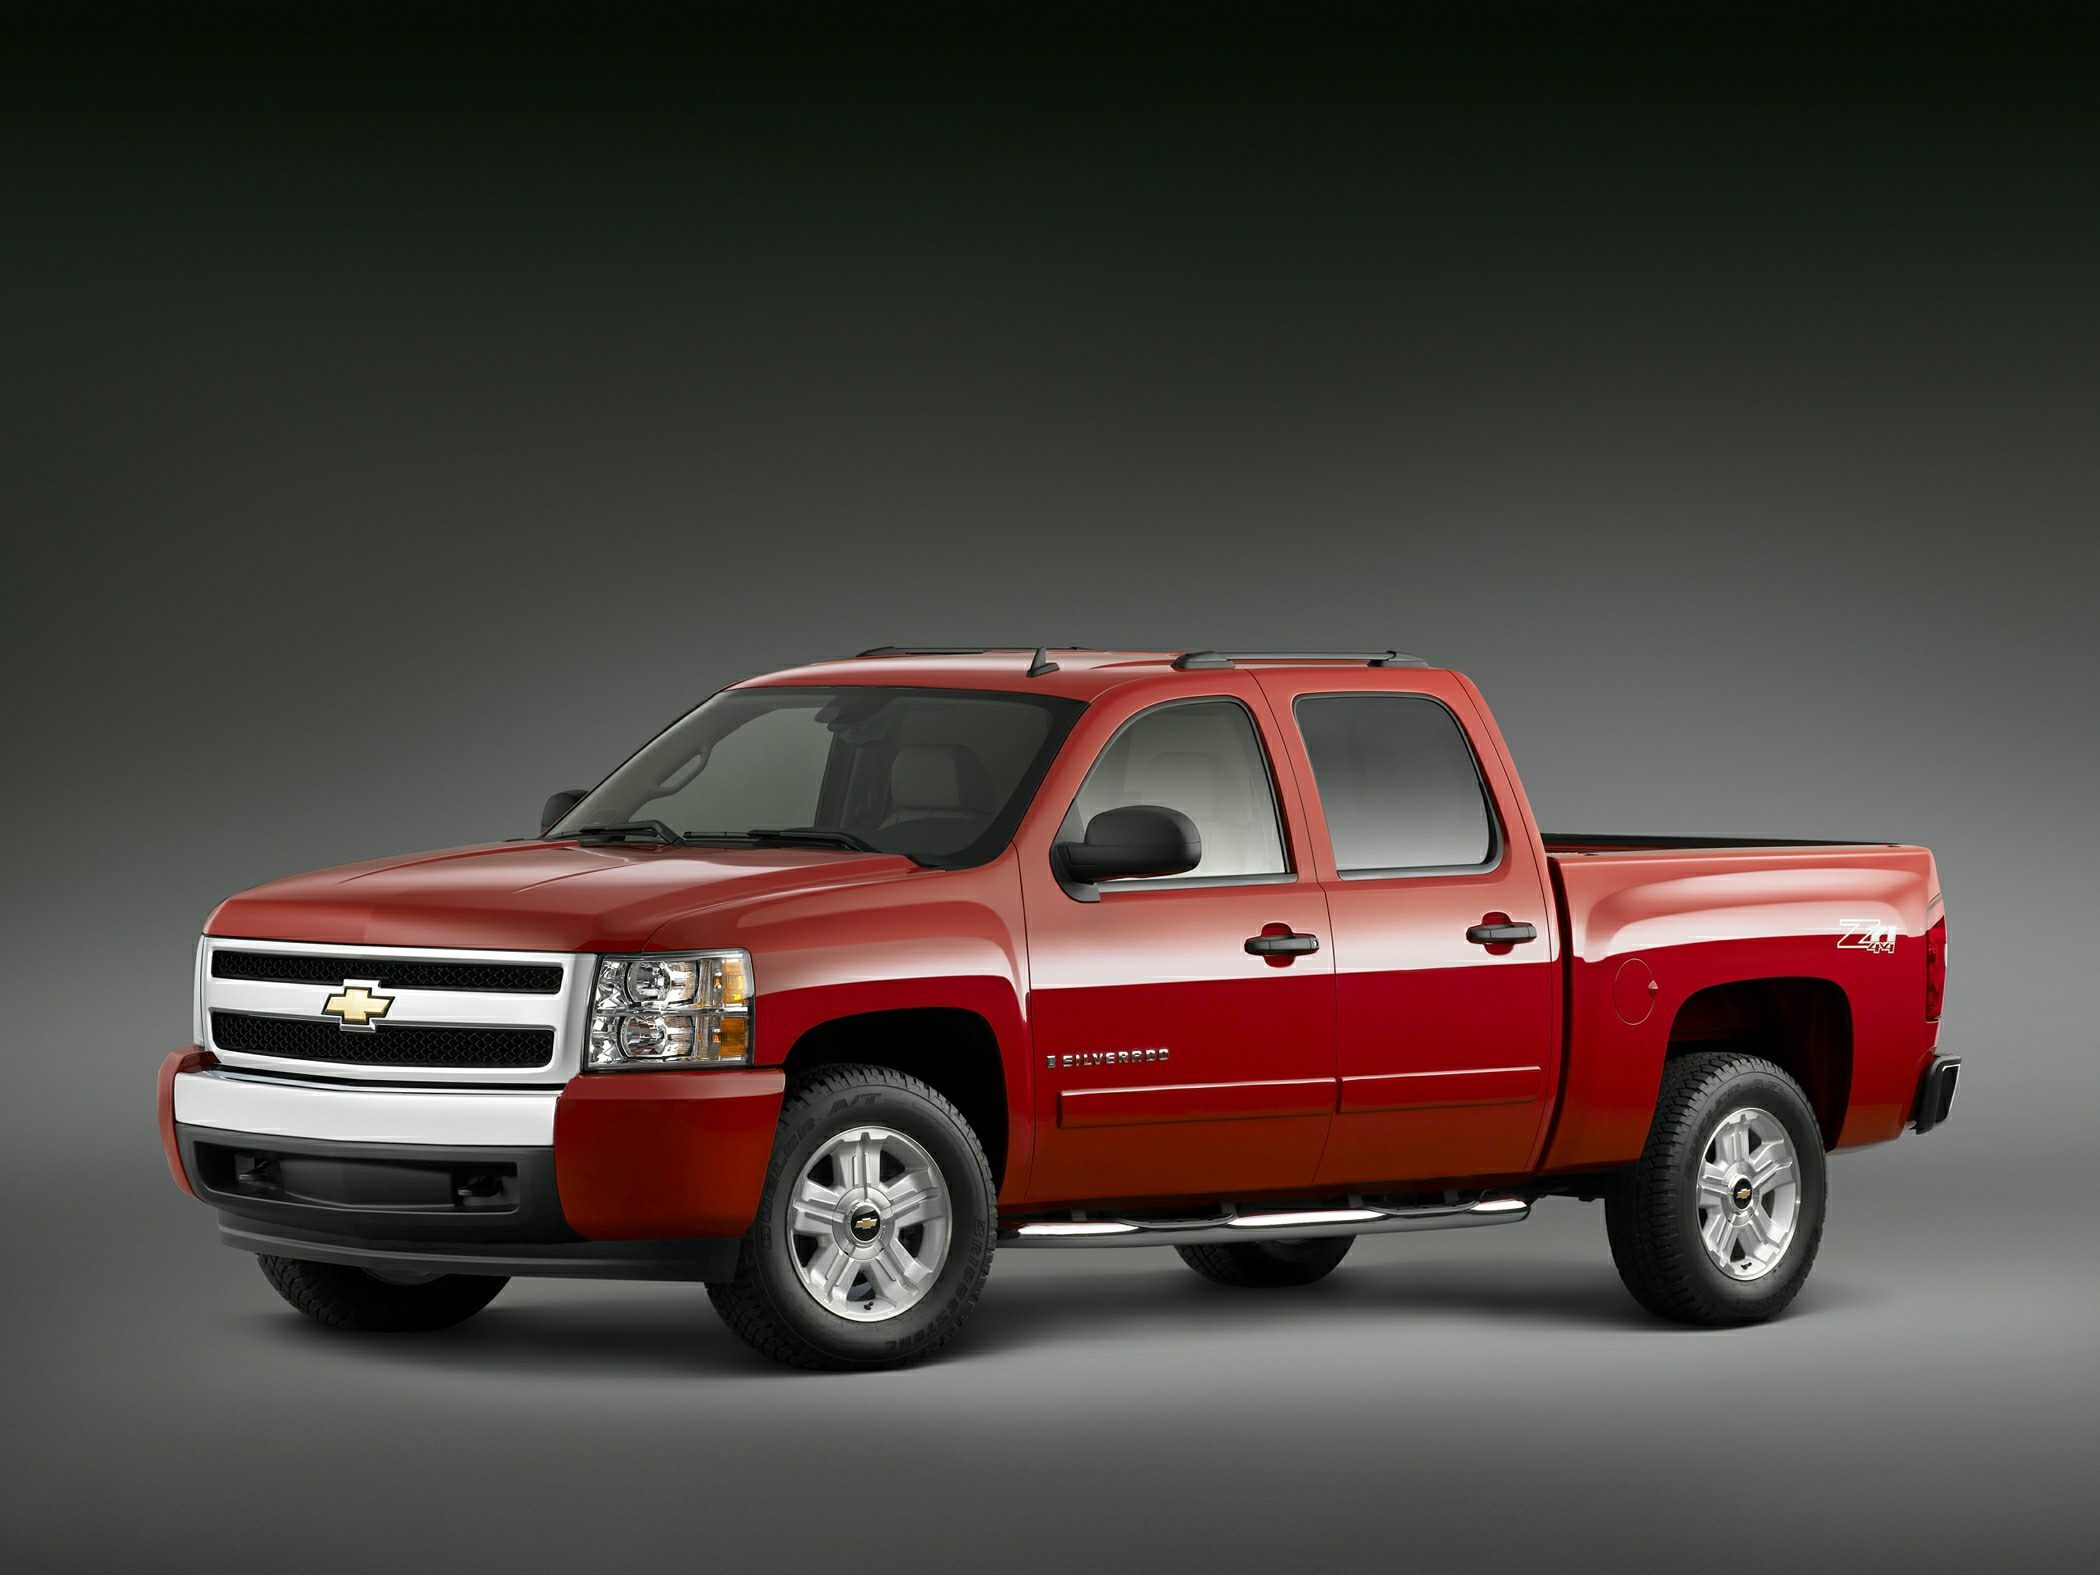 2013 Chevrolet Silverado 1500 LTZ Blue 308 Rear Axle RatioFront Full-Feature Bucket SeatsLeathe